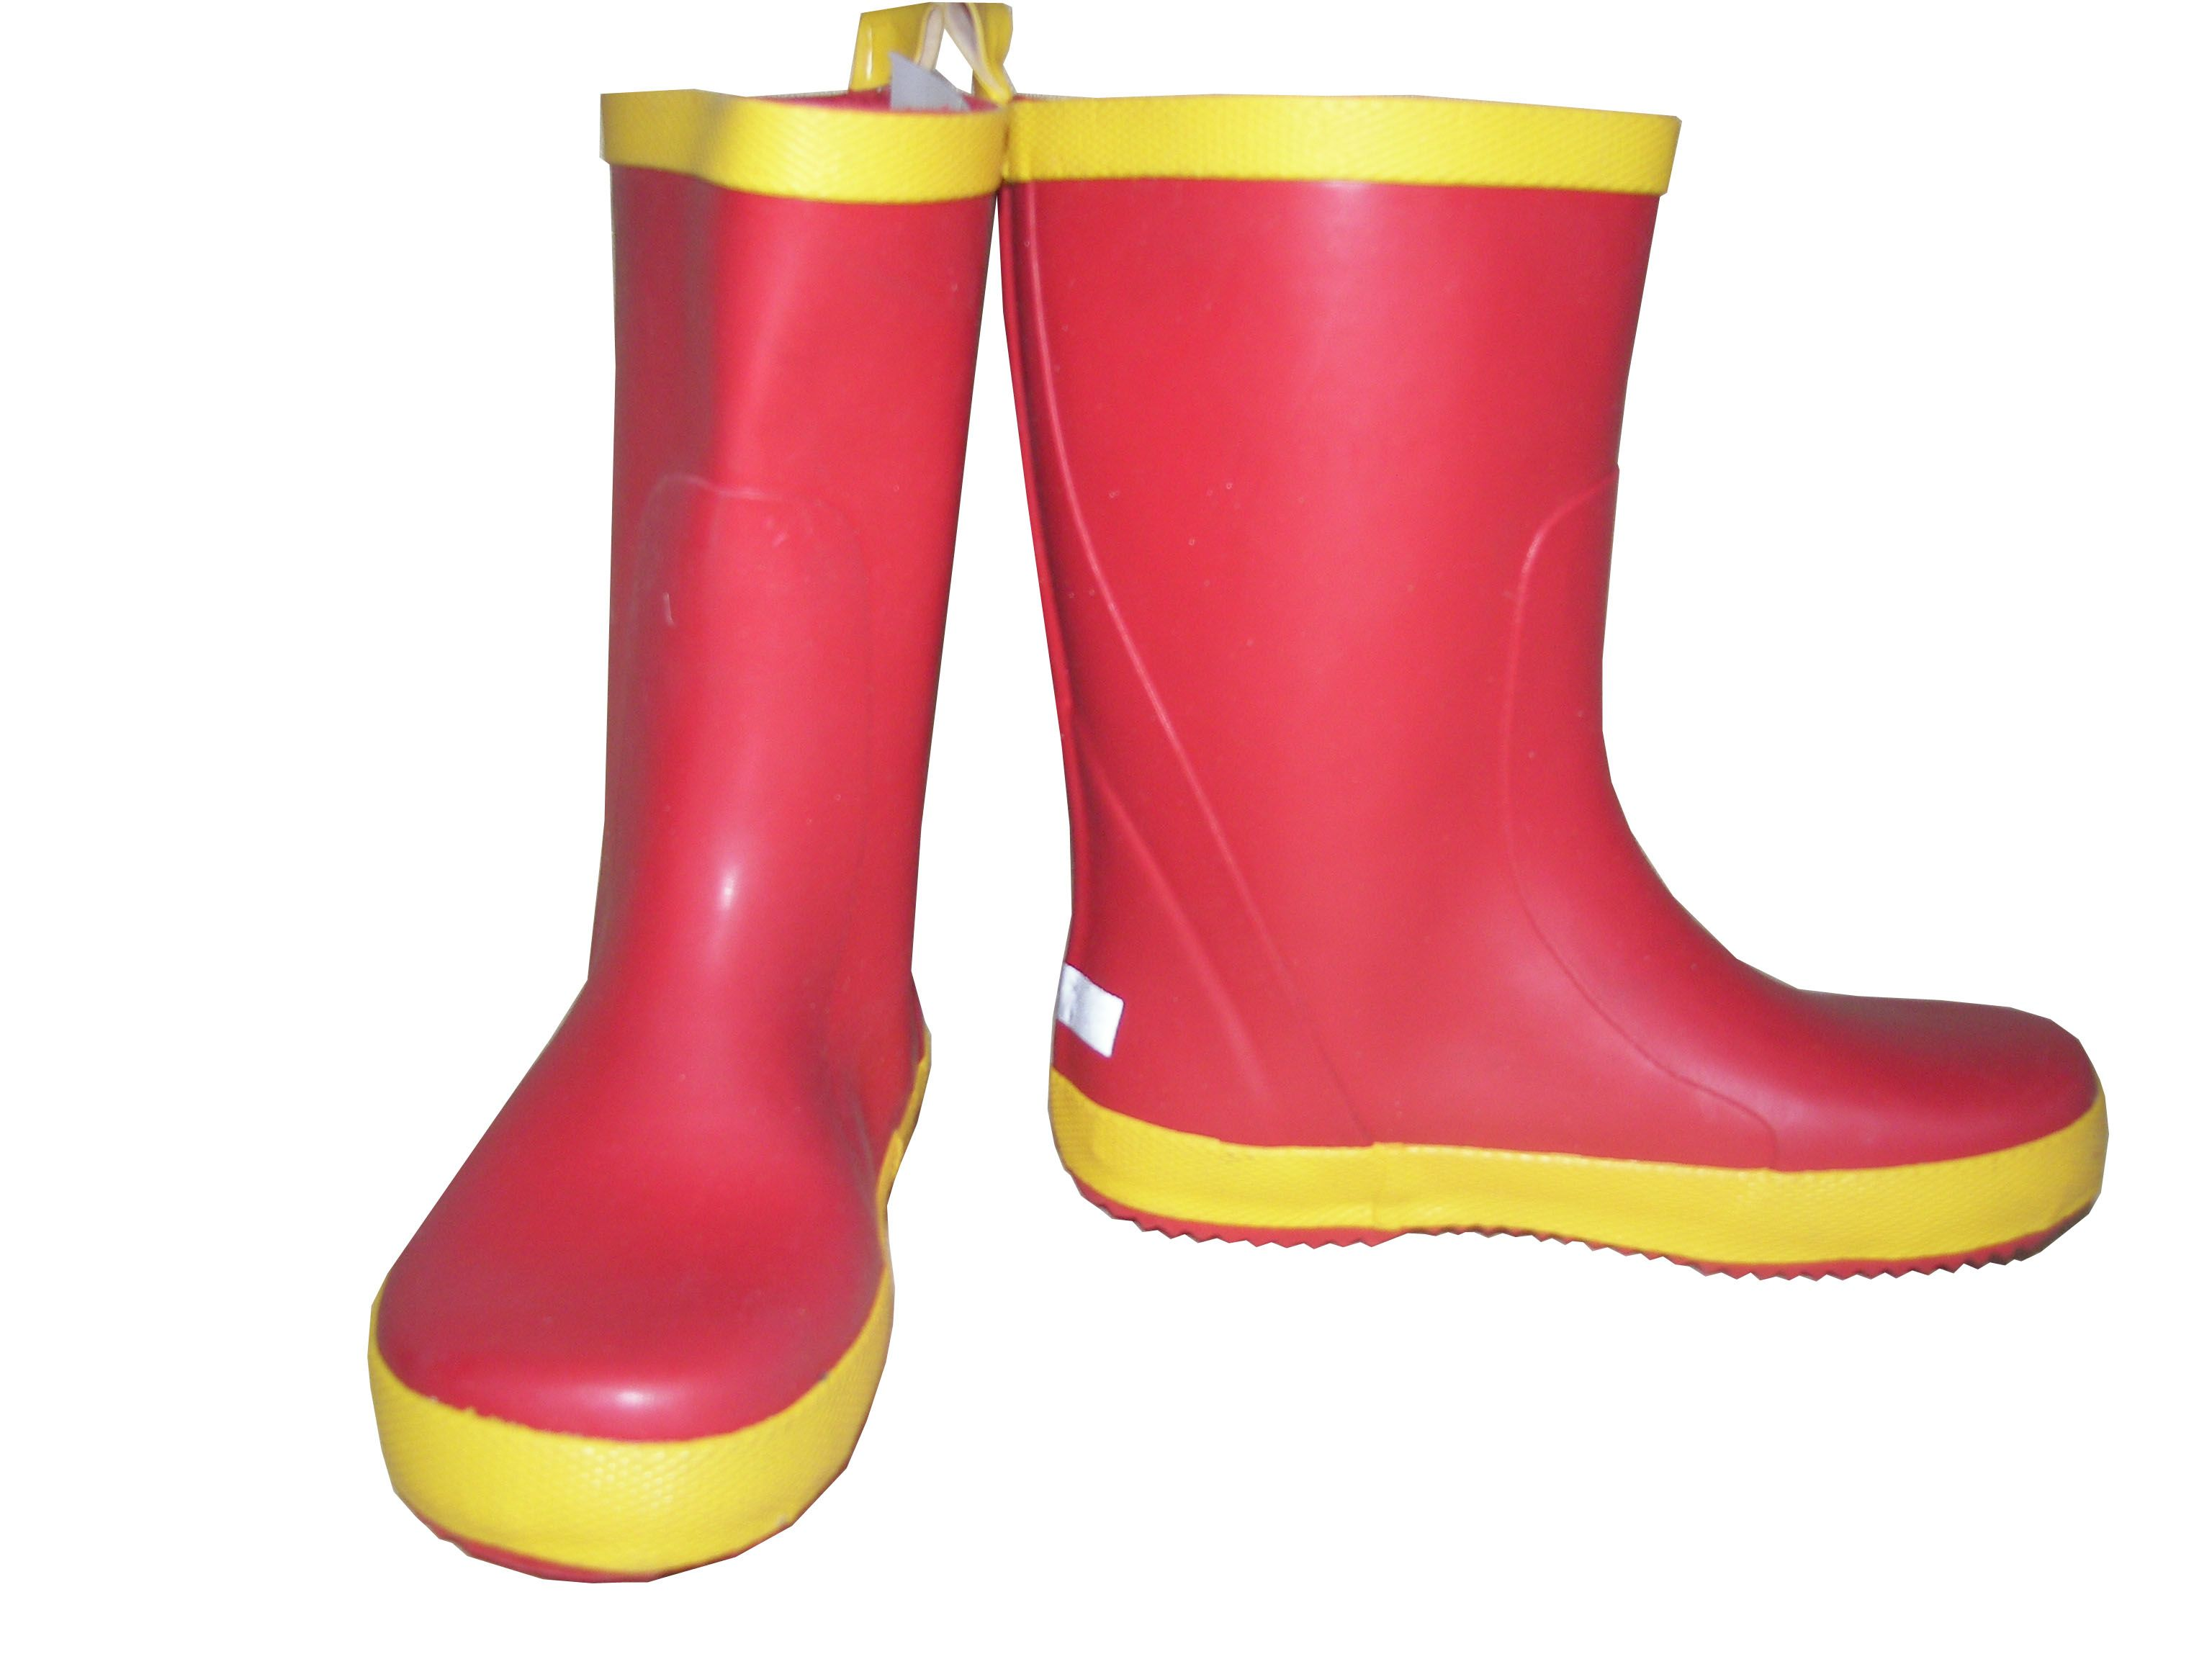 Product Name: kids rubber boots | For Kids Shoes